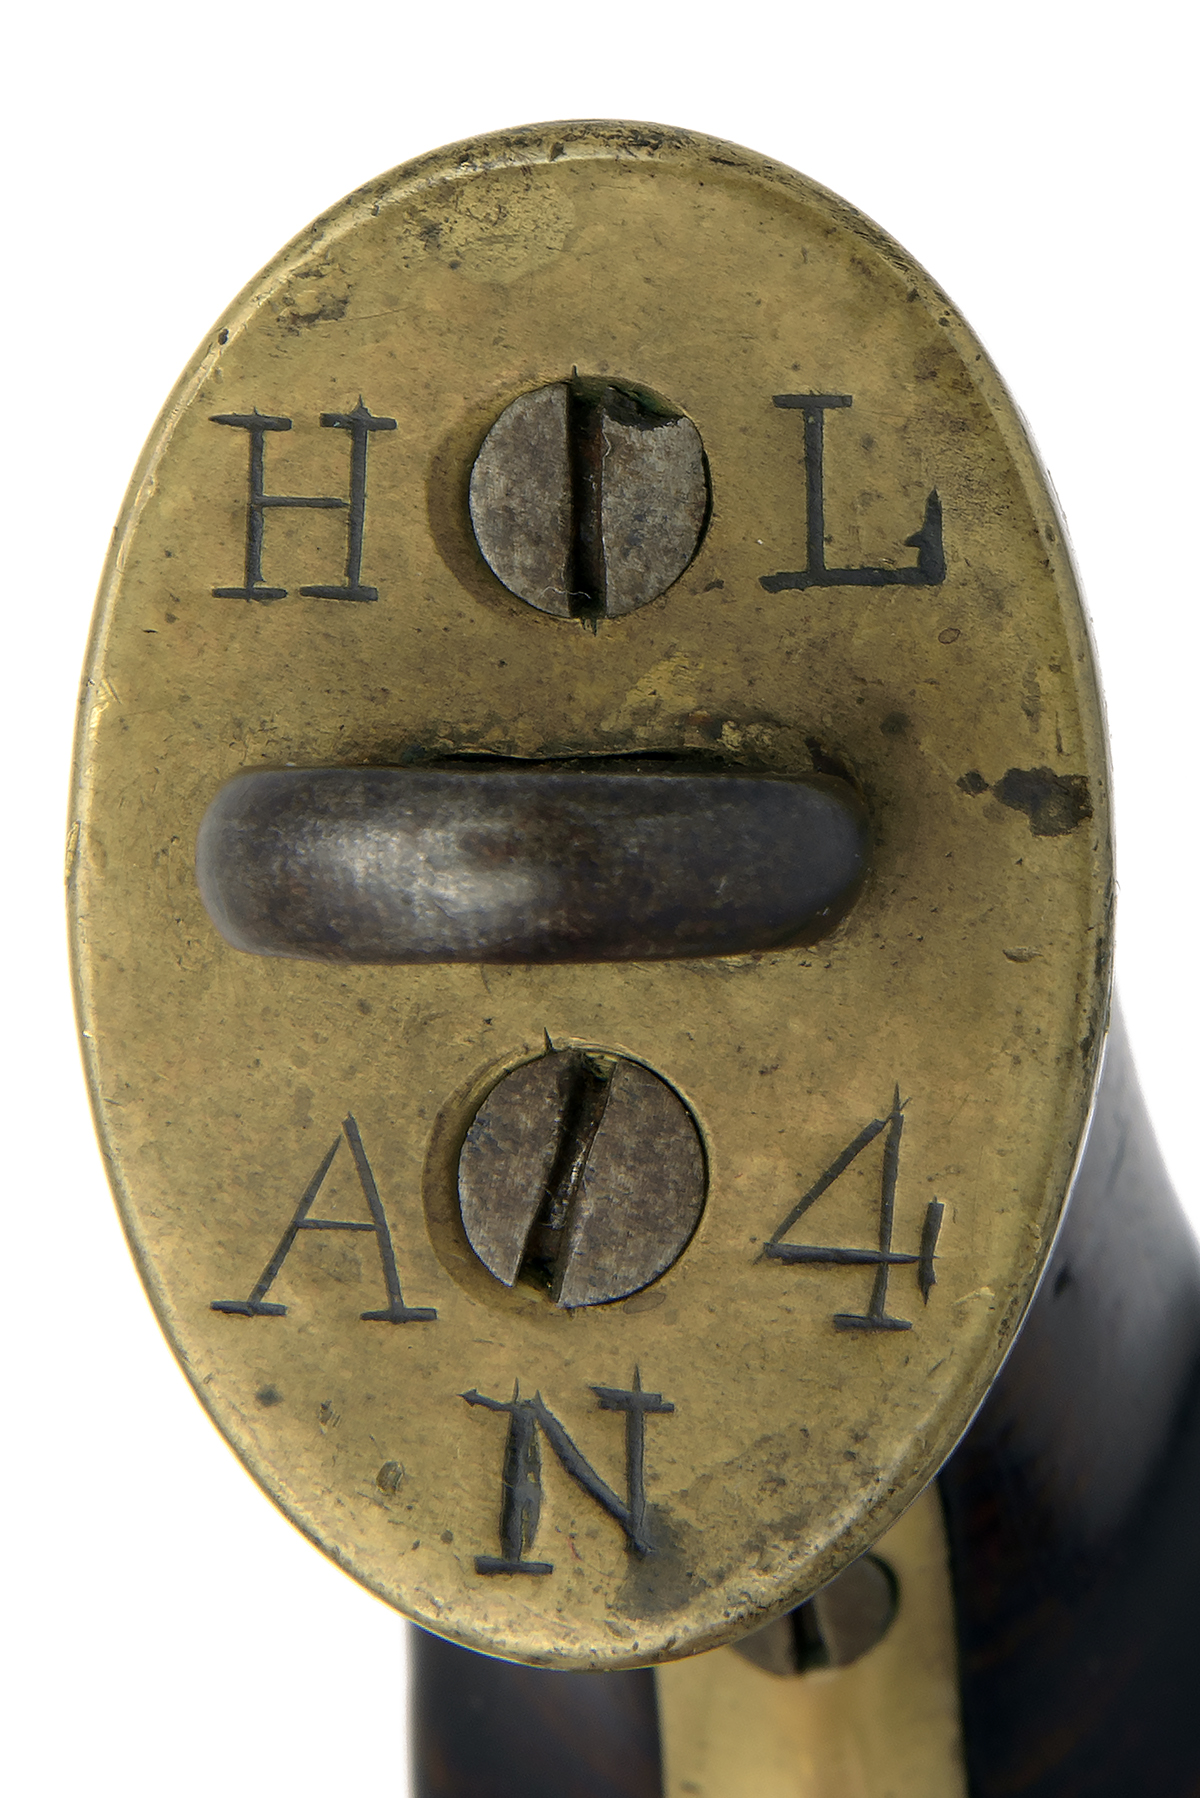 A RARE .650 PERCUSSION PISTOL FOR THE EAST INDIA COMPANY, no visible serial number, converted from - Image 3 of 4